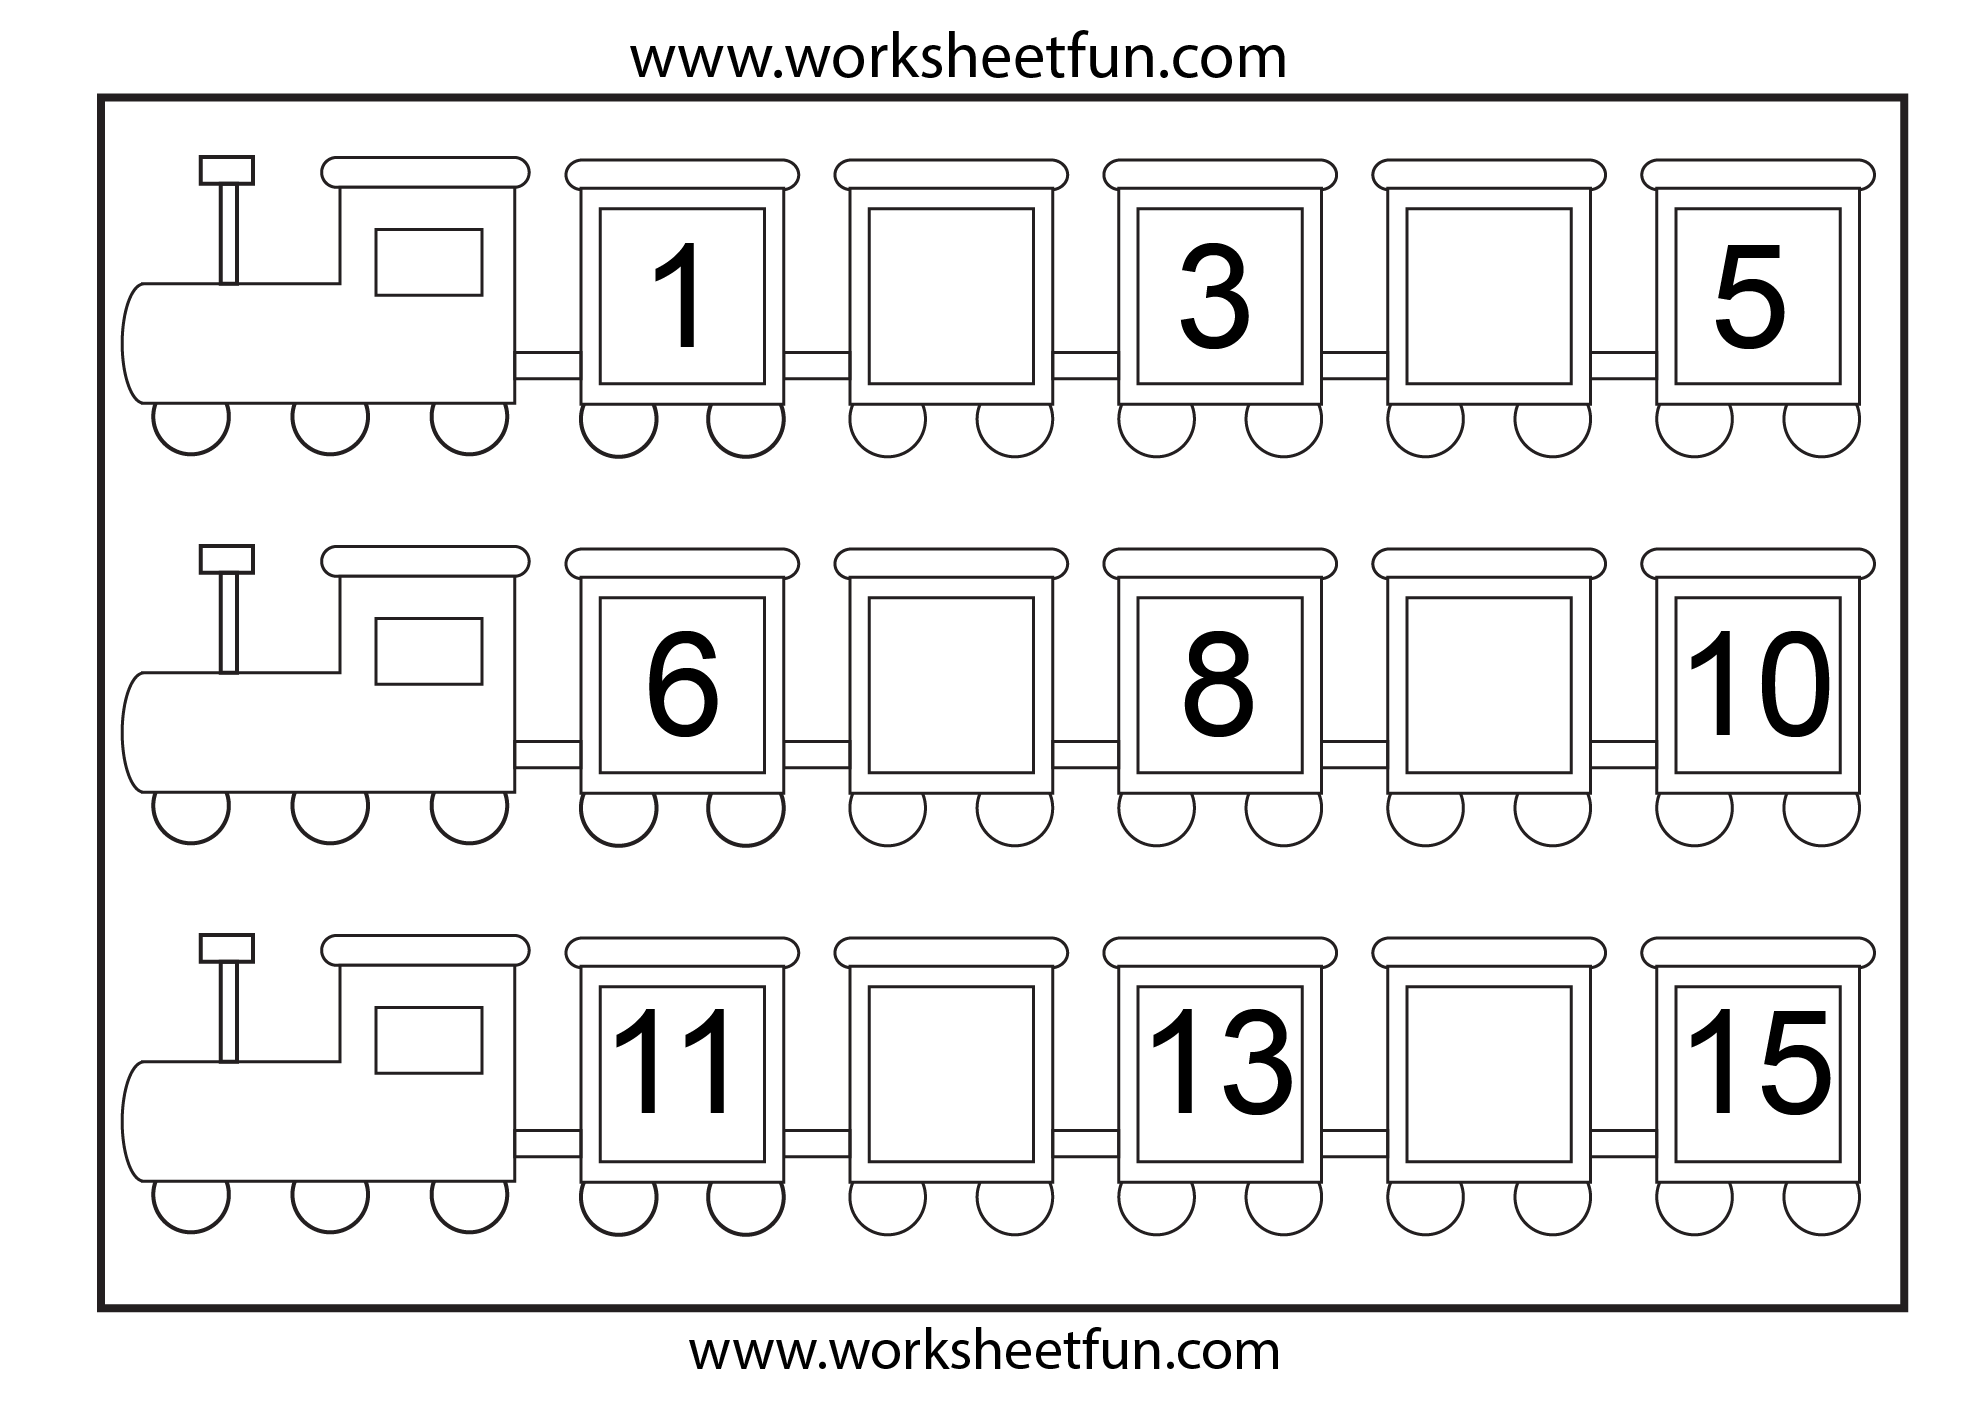 Worksheet 612792 Missing Numbers Worksheets for Kindergarten – Number Worksheets for Kindergarten